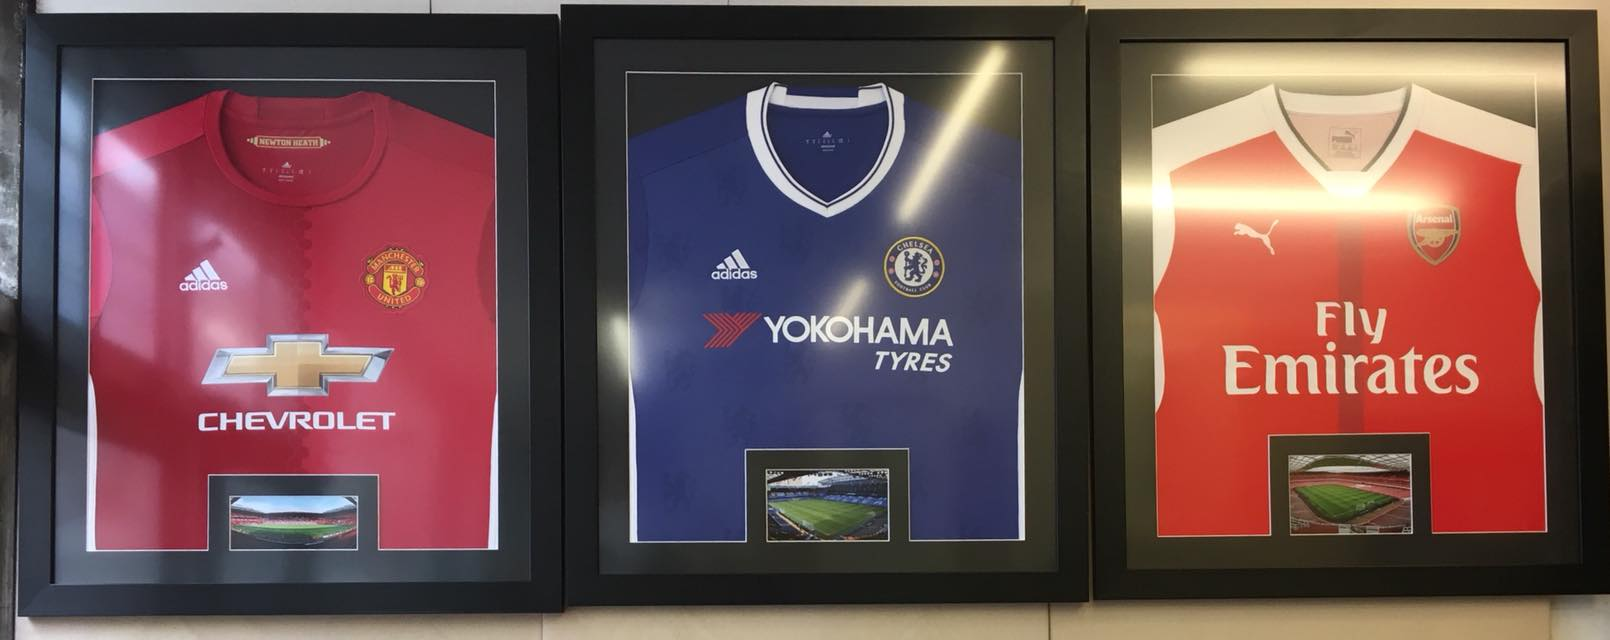 Manchester united, Chelsea, and Arsenal shirt in 3 individual black frames with black mounts